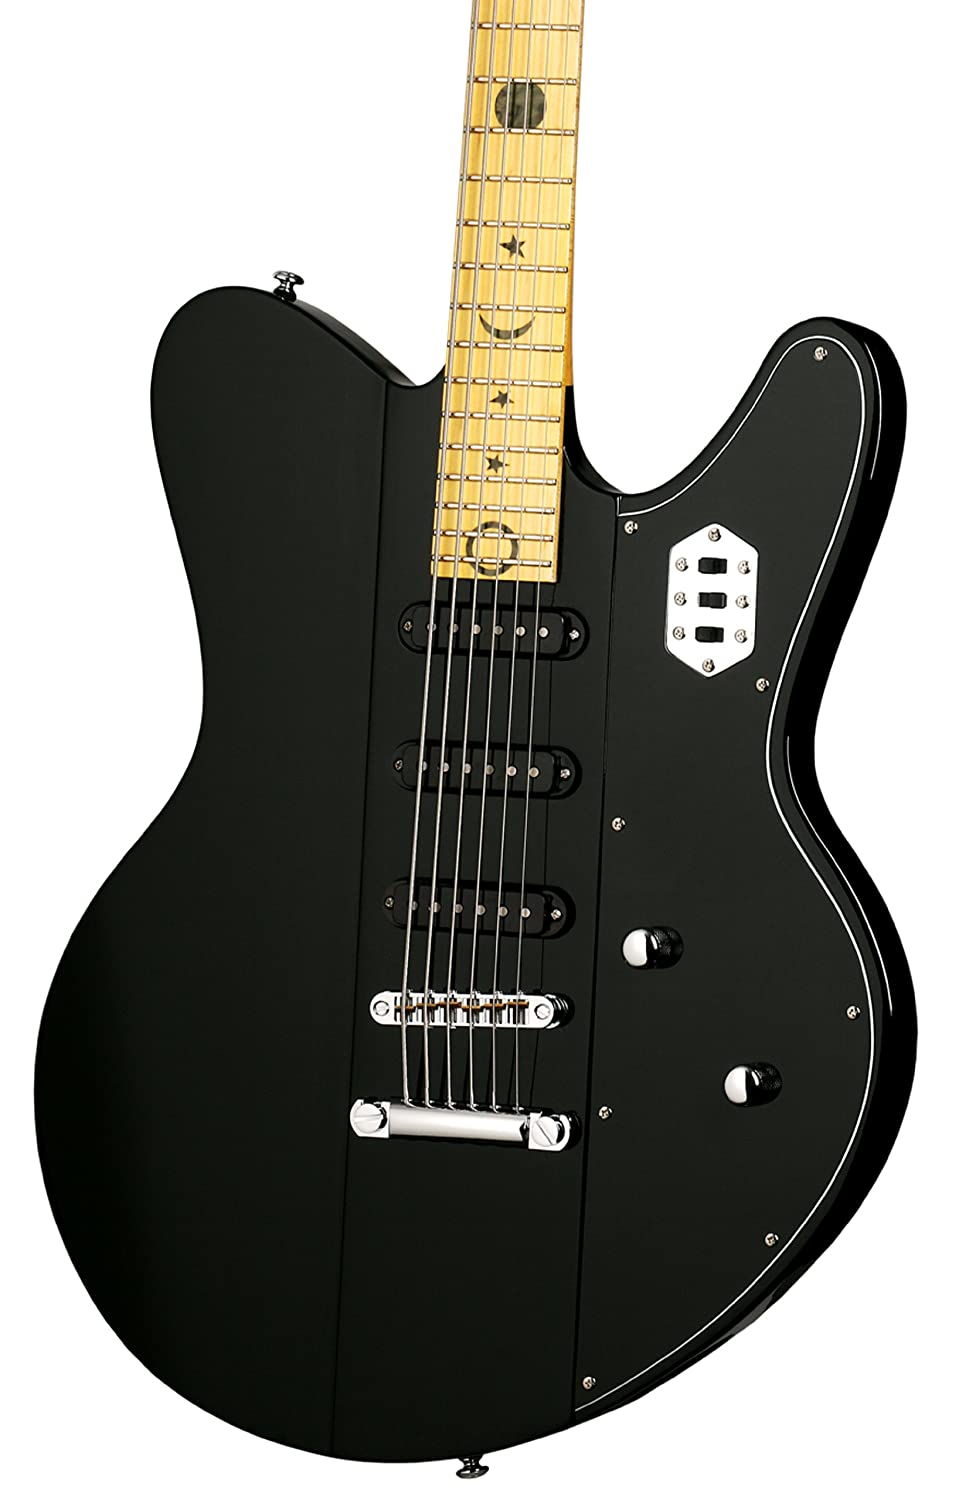 Robert Smith Schecter Ultracure VI 6 cuerdas para guitarra eléctrica, color negro: Amazon.es: Instrumentos musicales